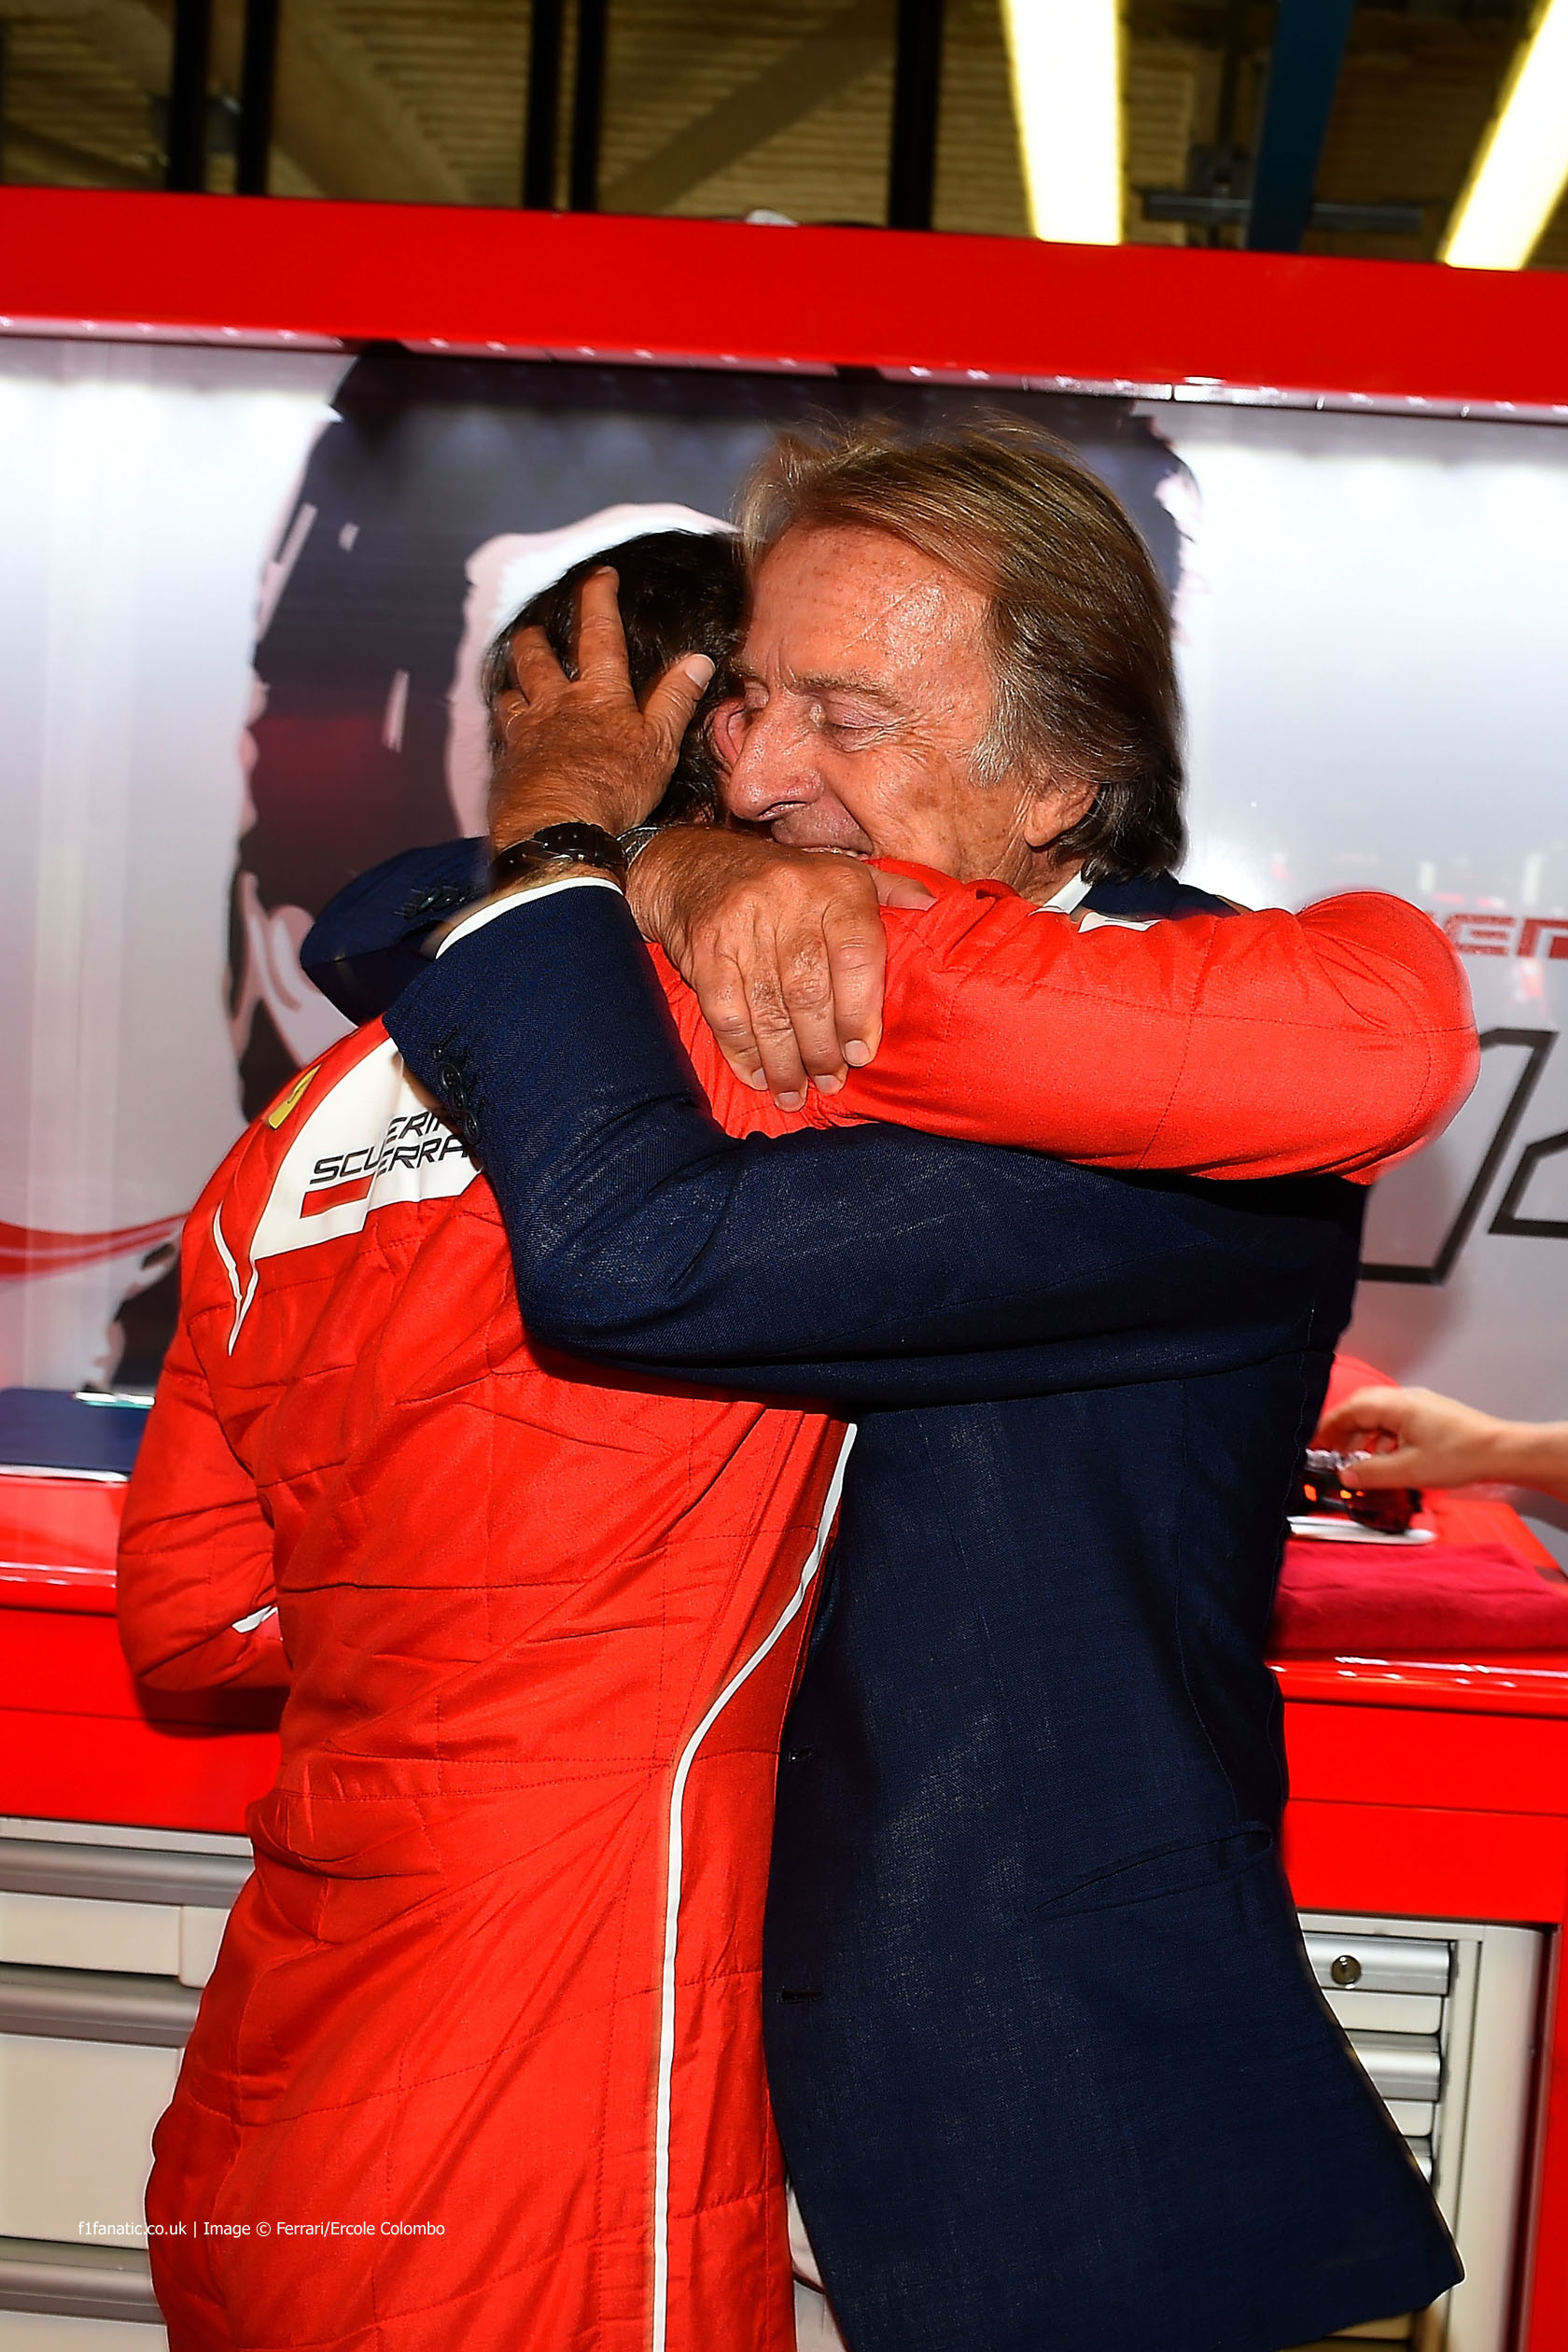 Alonso and Di Montezemolo embracing at the 2014 Italian GP